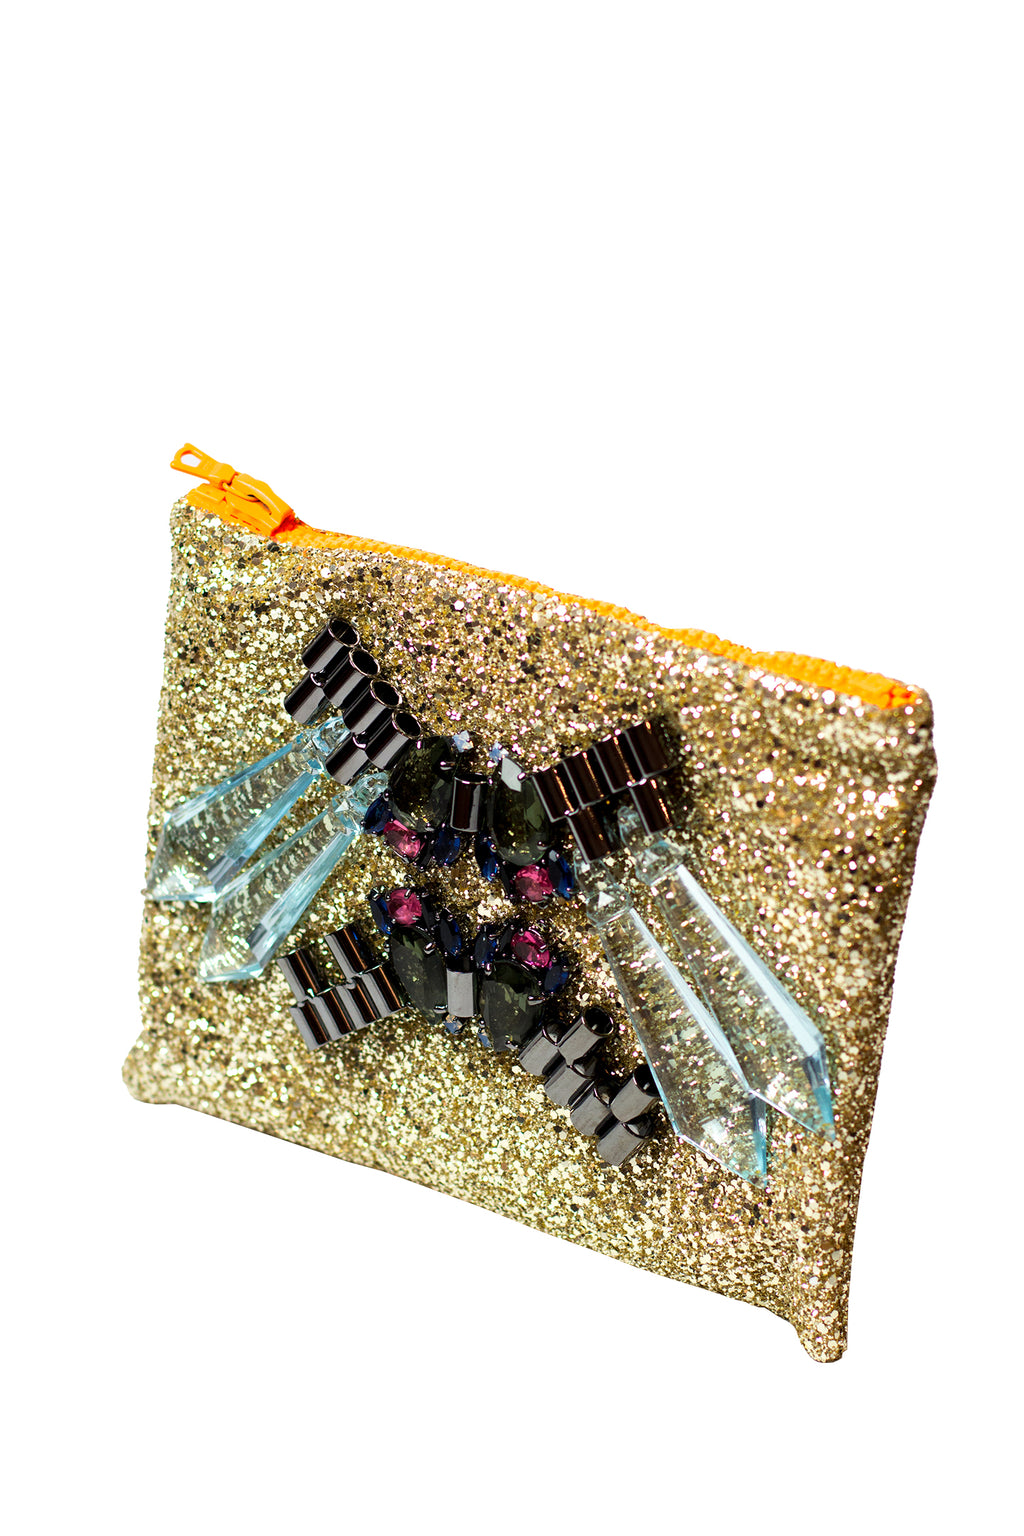 Mawi - Single glitter clutch w/tubes,perspex spikes & teardropcryst